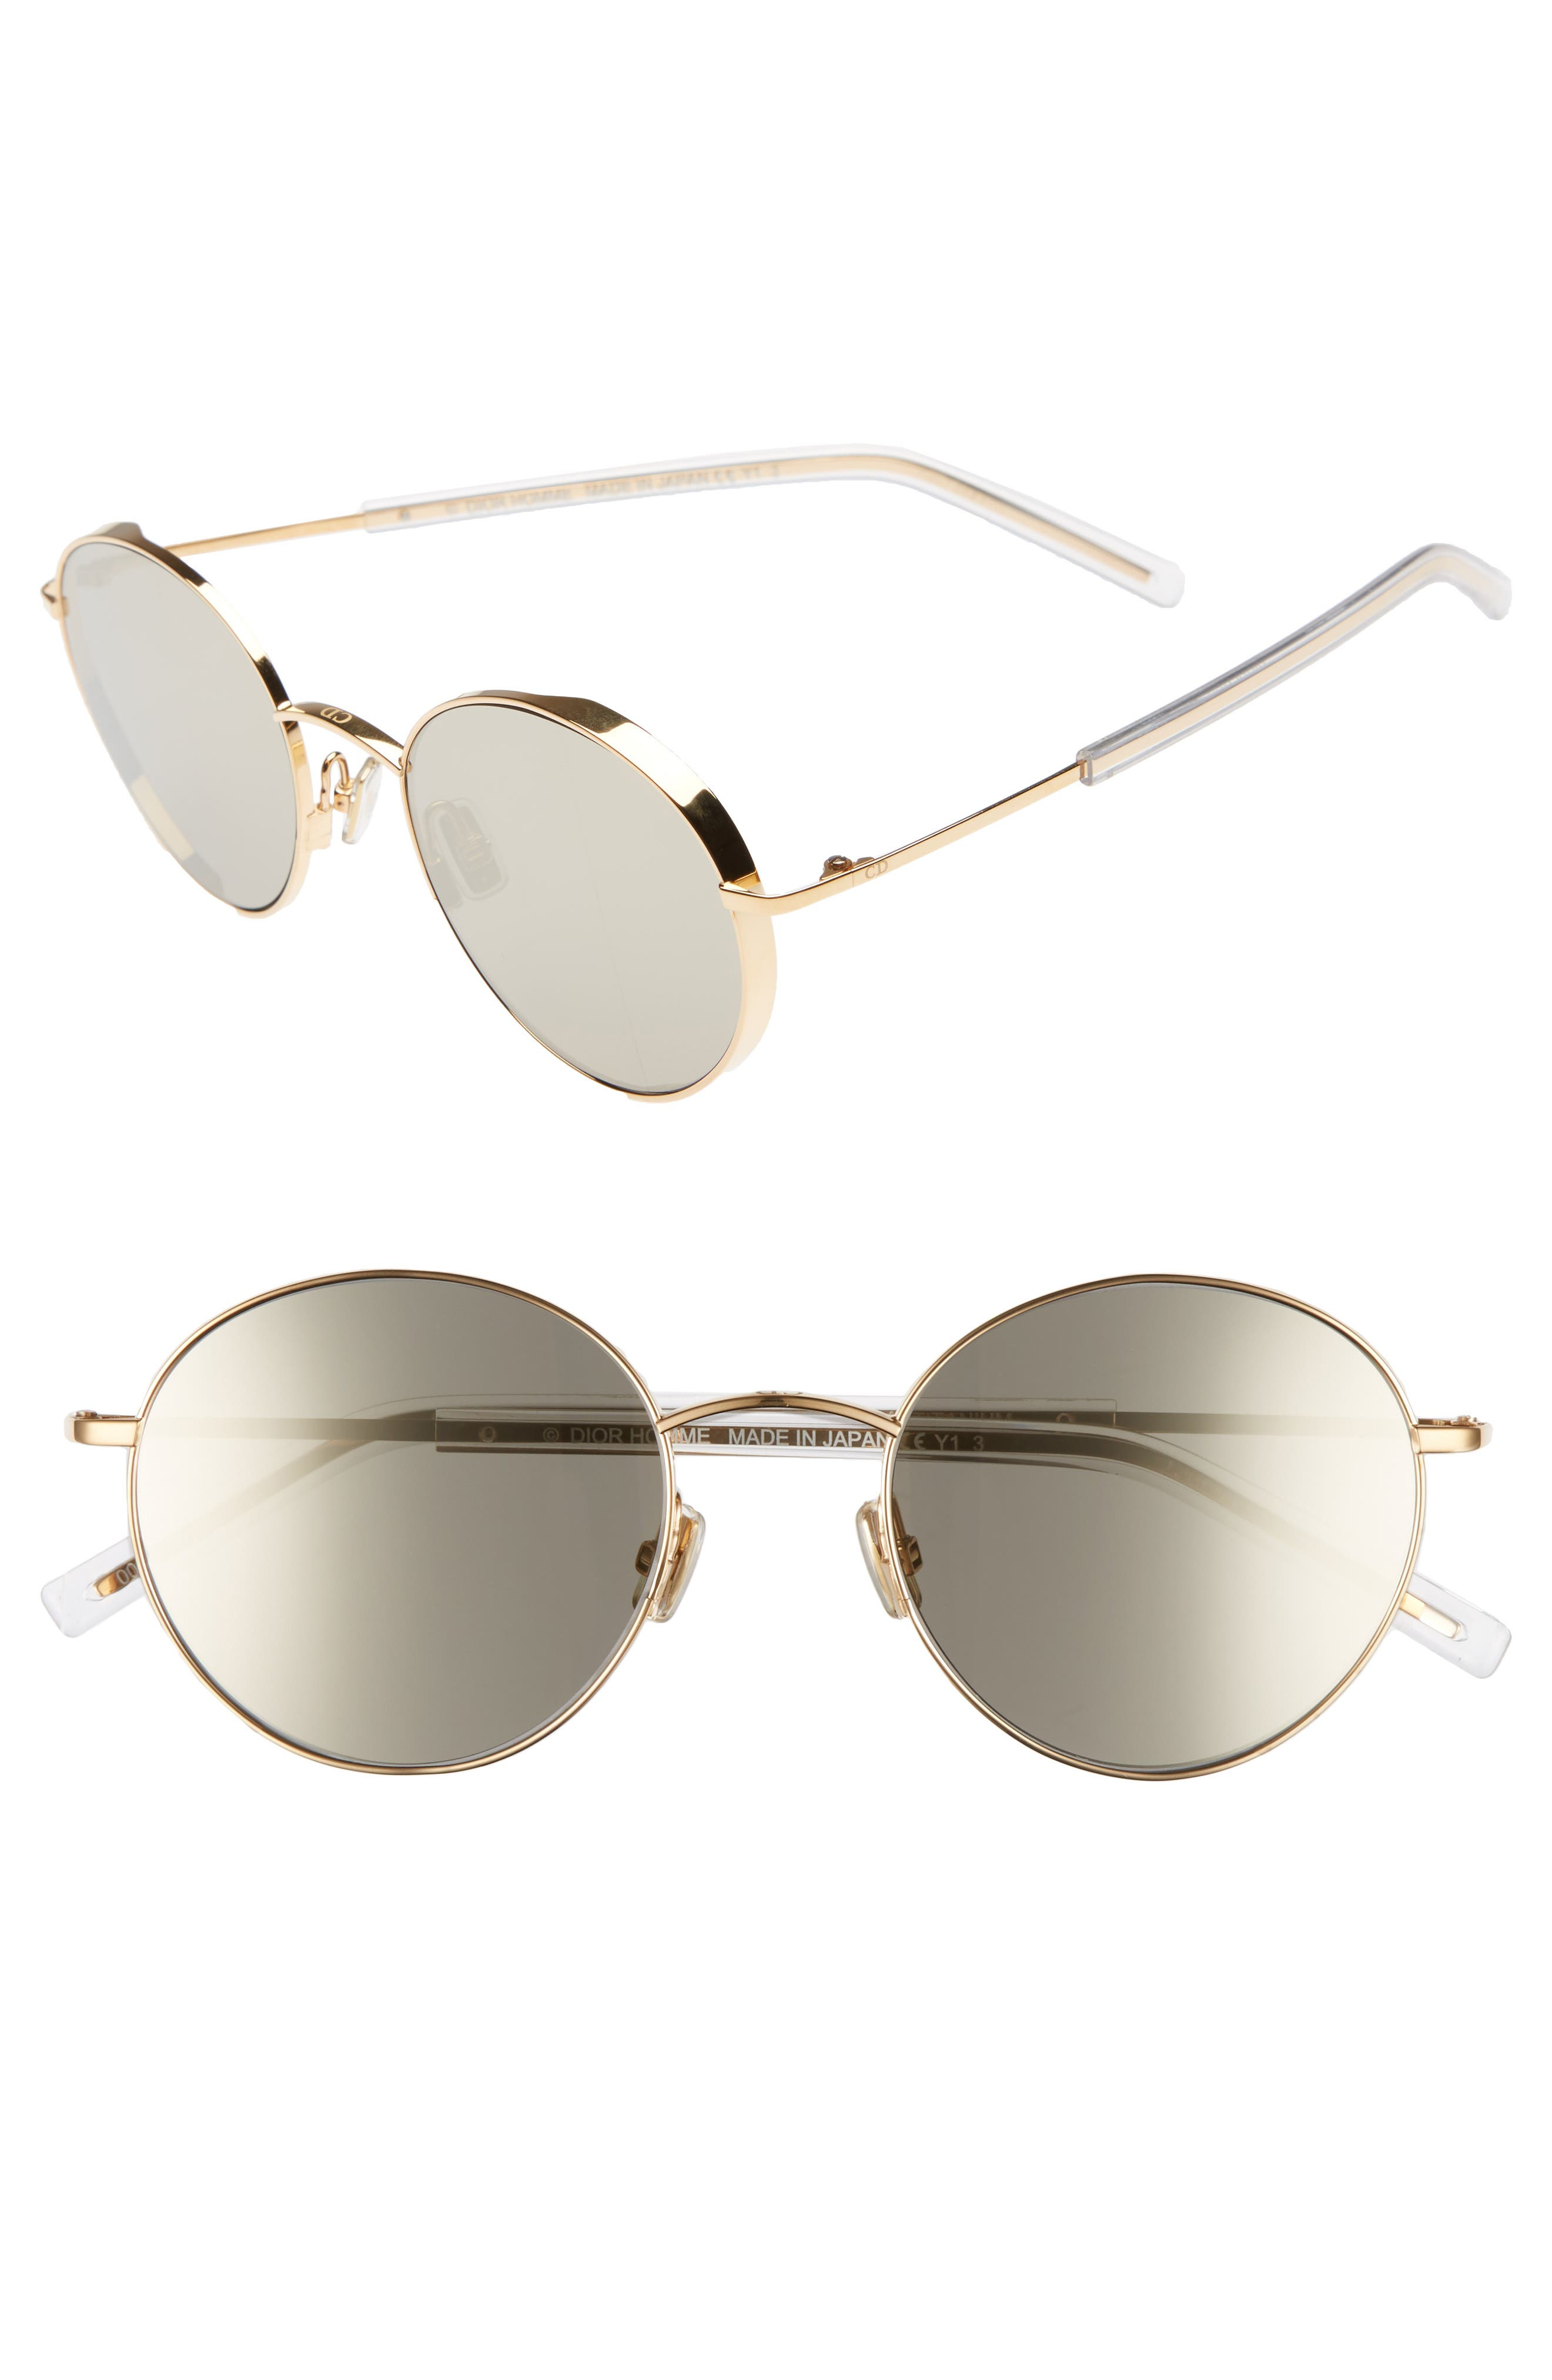 Alternate Image 1 Selected - Dior Homme Edgy 52mm Sunglasses